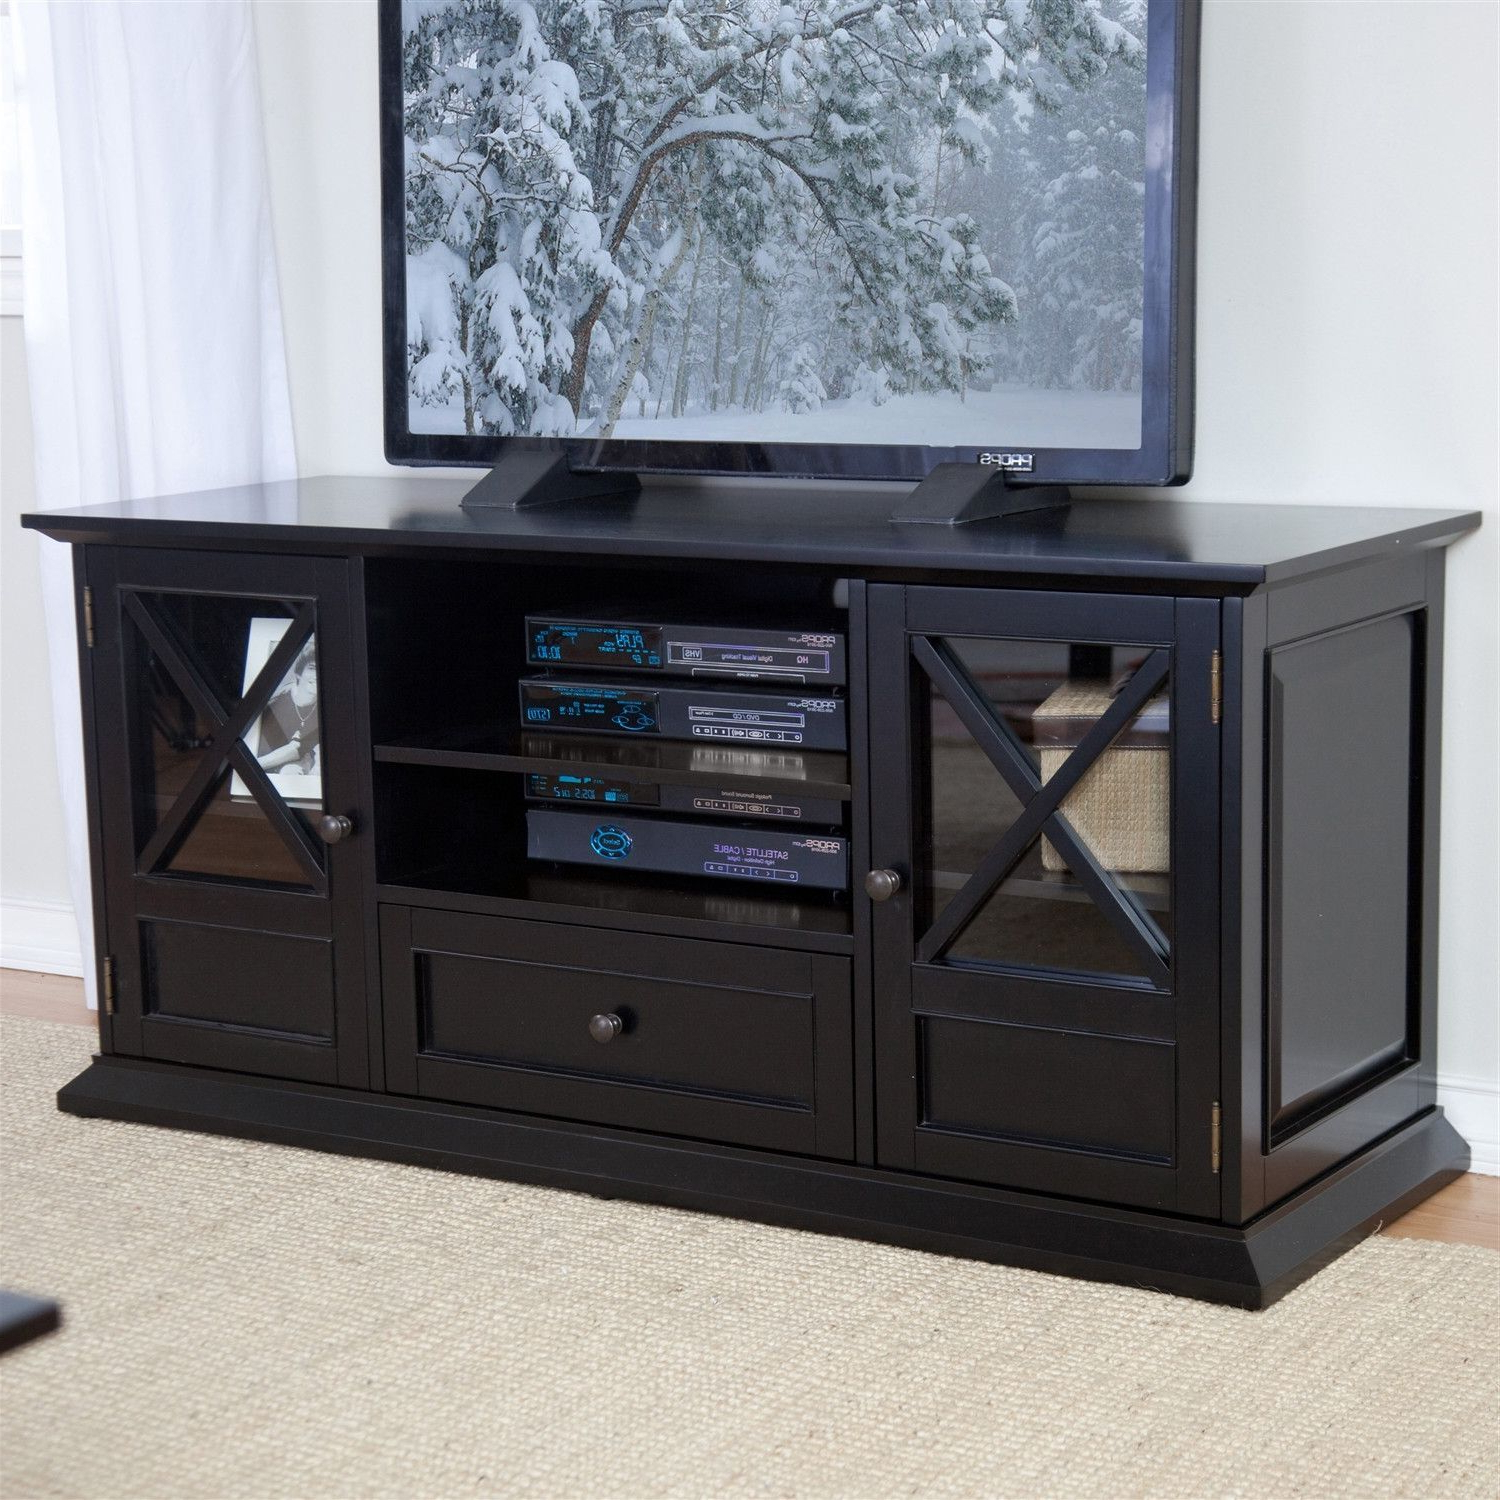 Solid Wood Black Tv Stands Pertaining To Well Known 55 Inch Wide Black Tv Stand Entertainment Center With Adjustable (View 16 of 20)